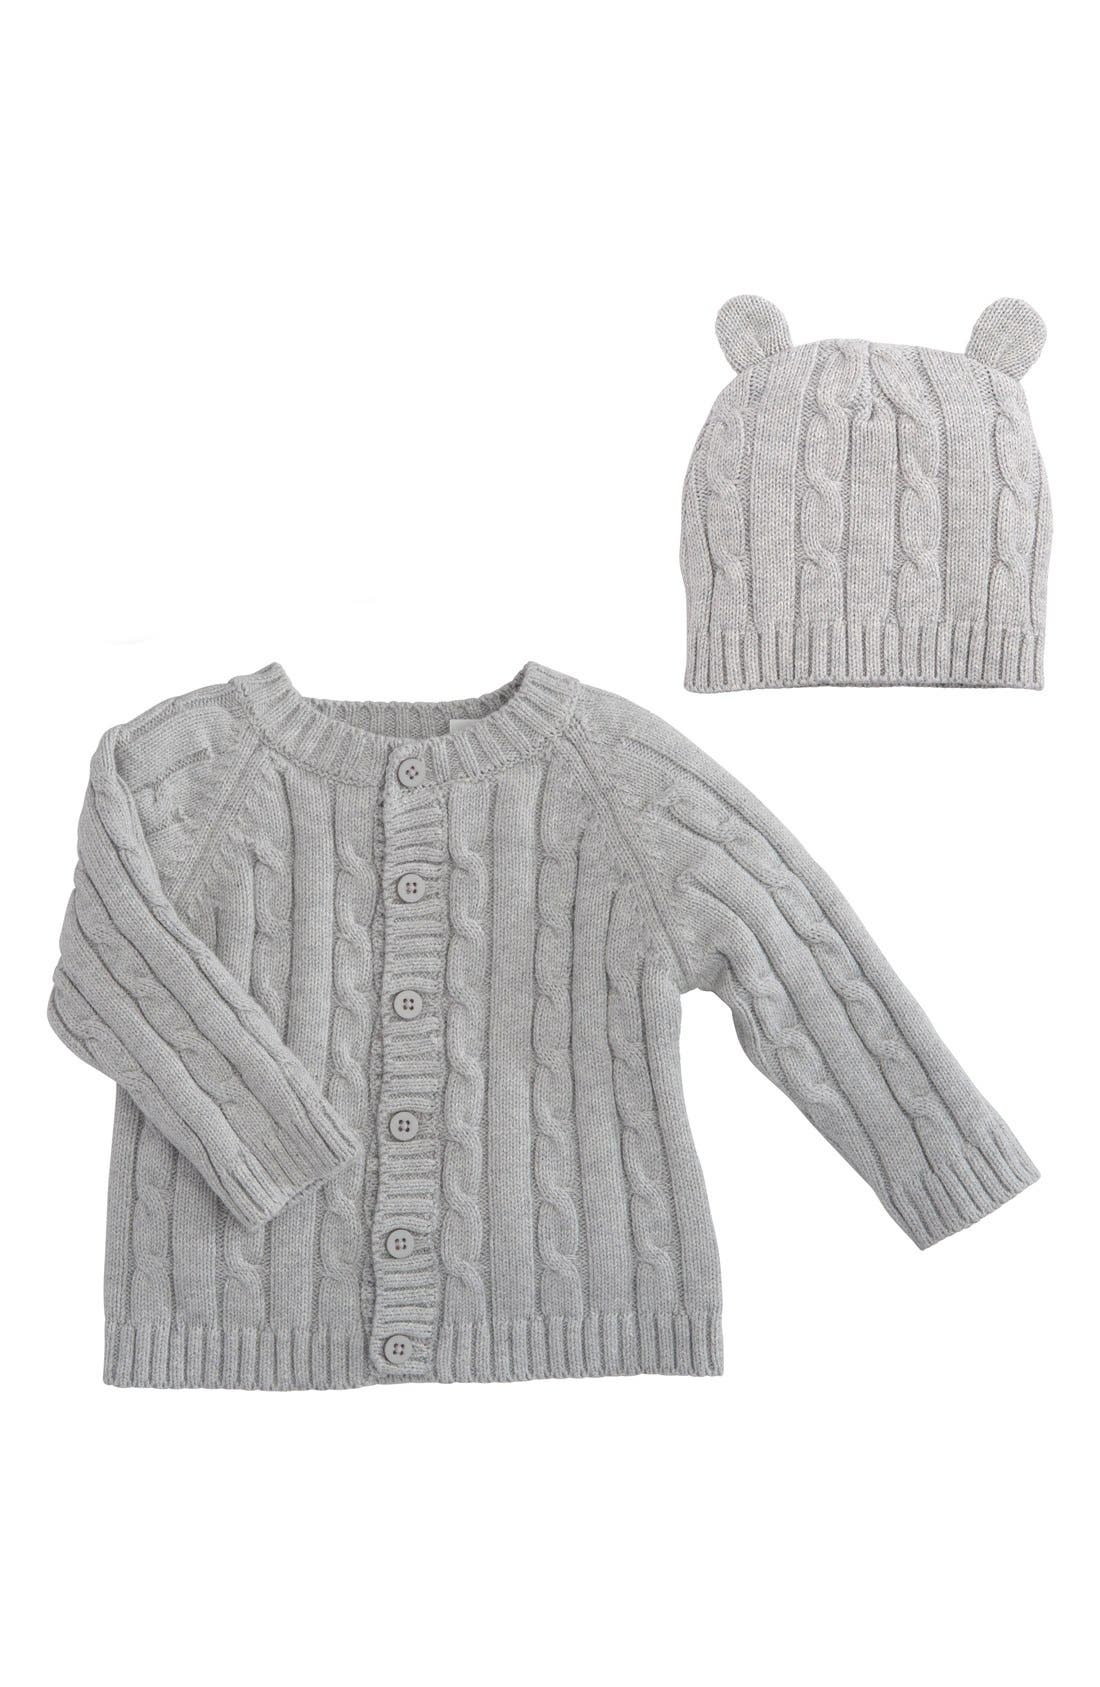 Main Image - Elegant Baby Cable Knit Sweater & Hat Set (Baby)